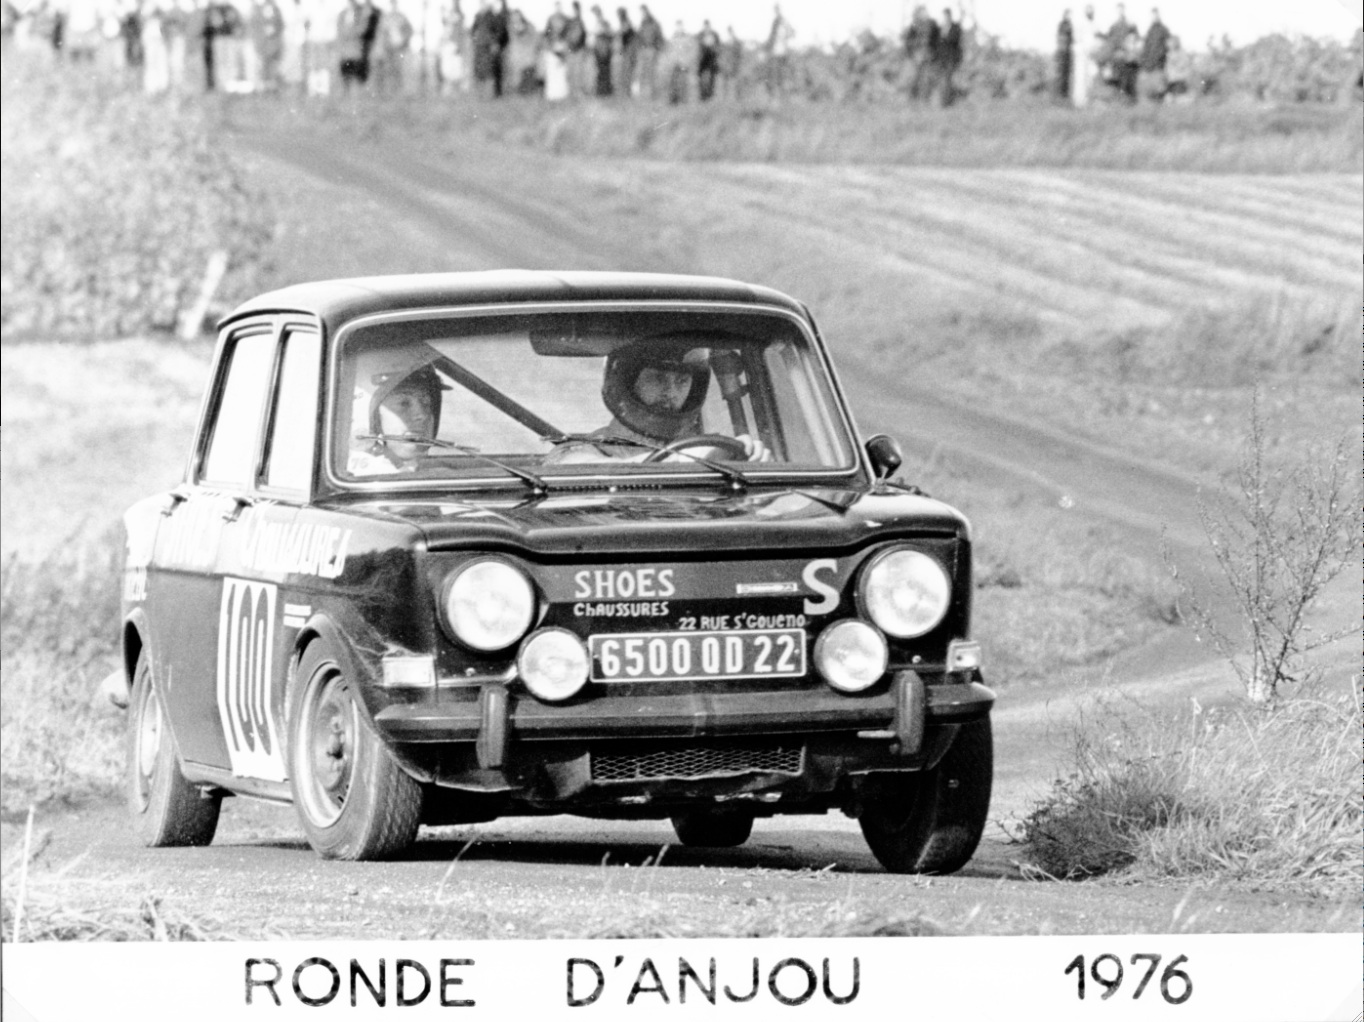 1975 SIMCA 1000 R2 FOURNIER-LAROQUE ANJOU 8